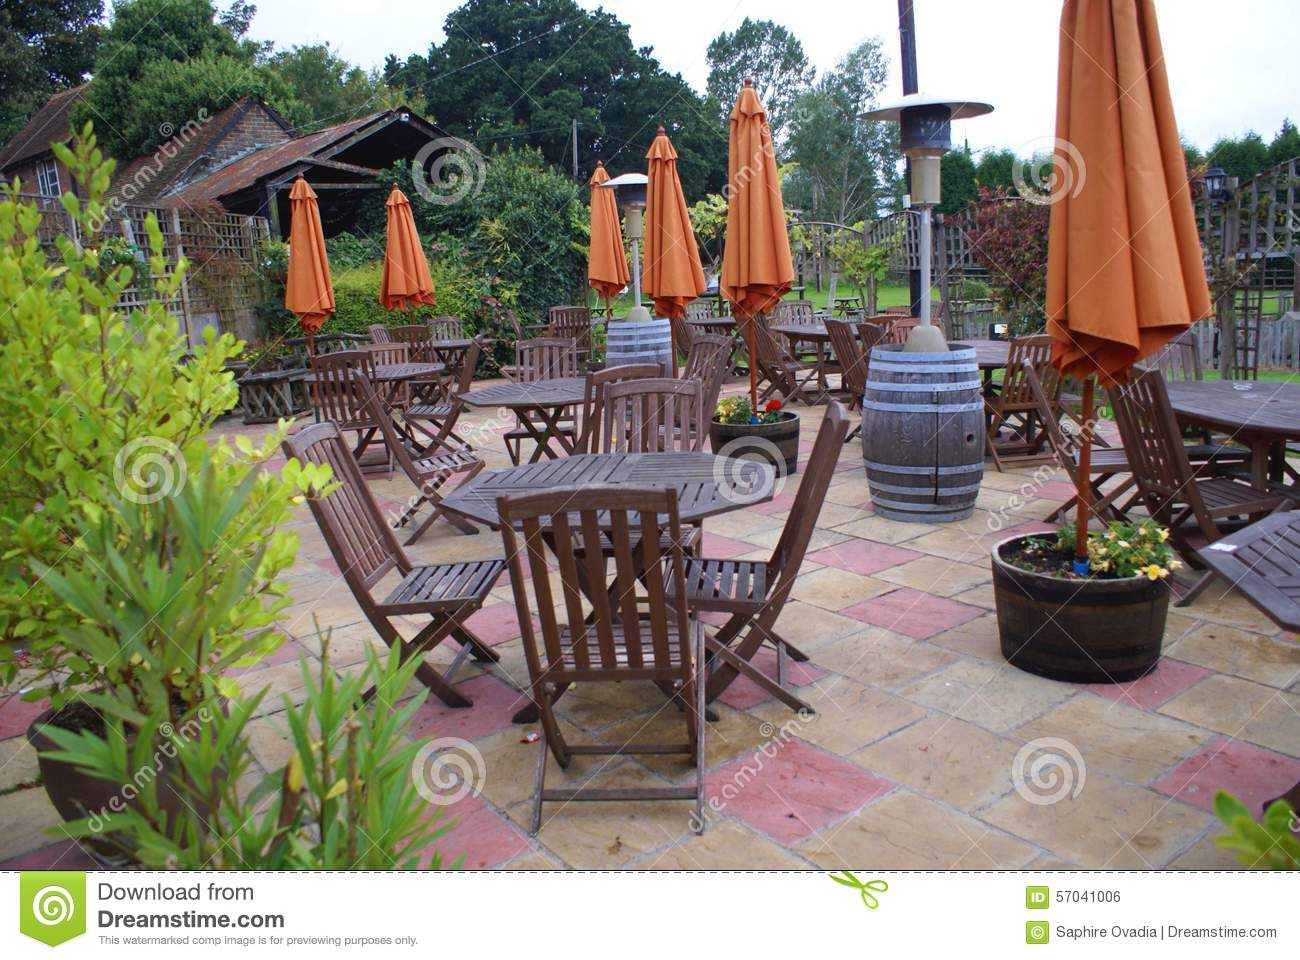 Patio Furniture Of Umbrellas, Wooden Chairs, And Wooden Tables